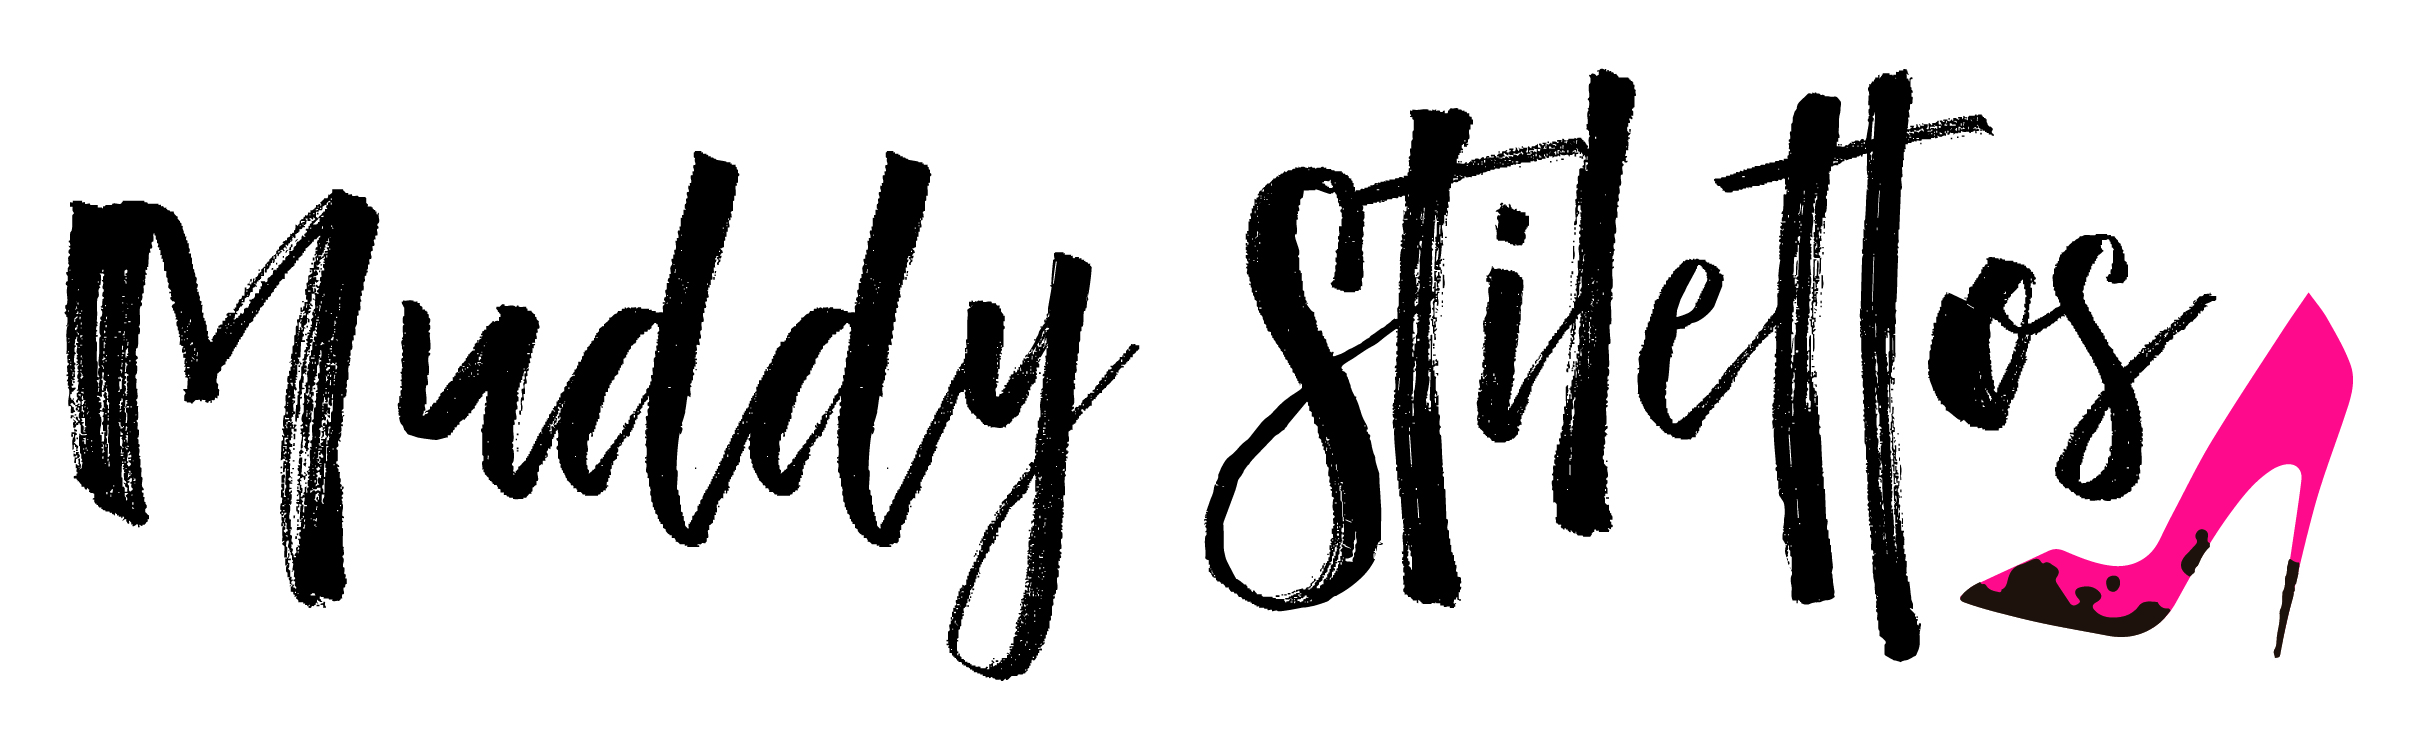 Muddy Stilettos logo-stacked-HR.jpg